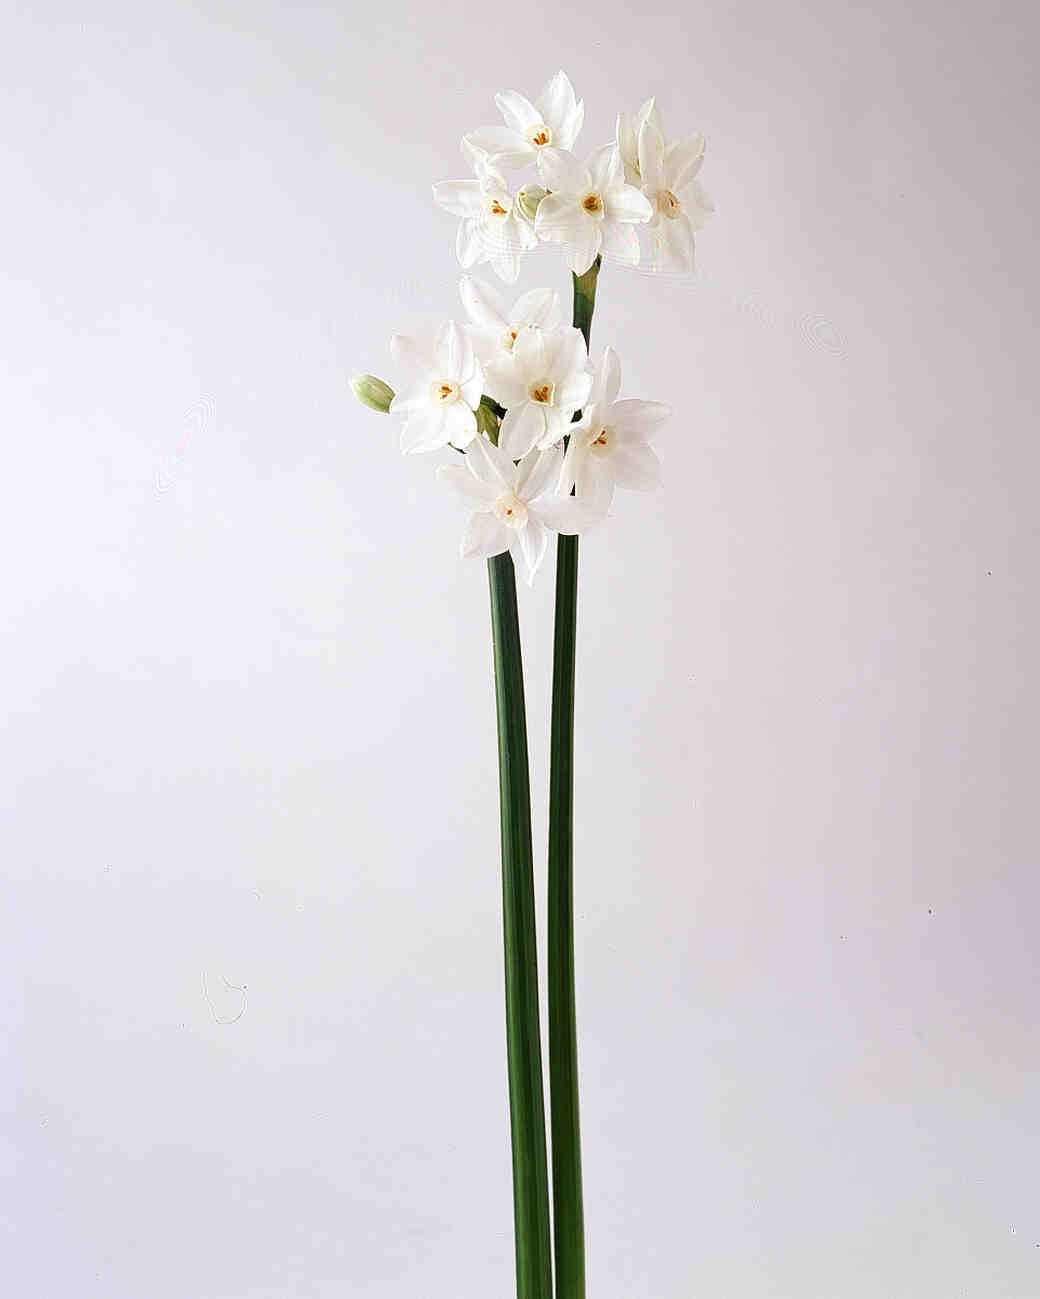 flower-glossary-narcissus-paper-whites-a98432-0415.jpg